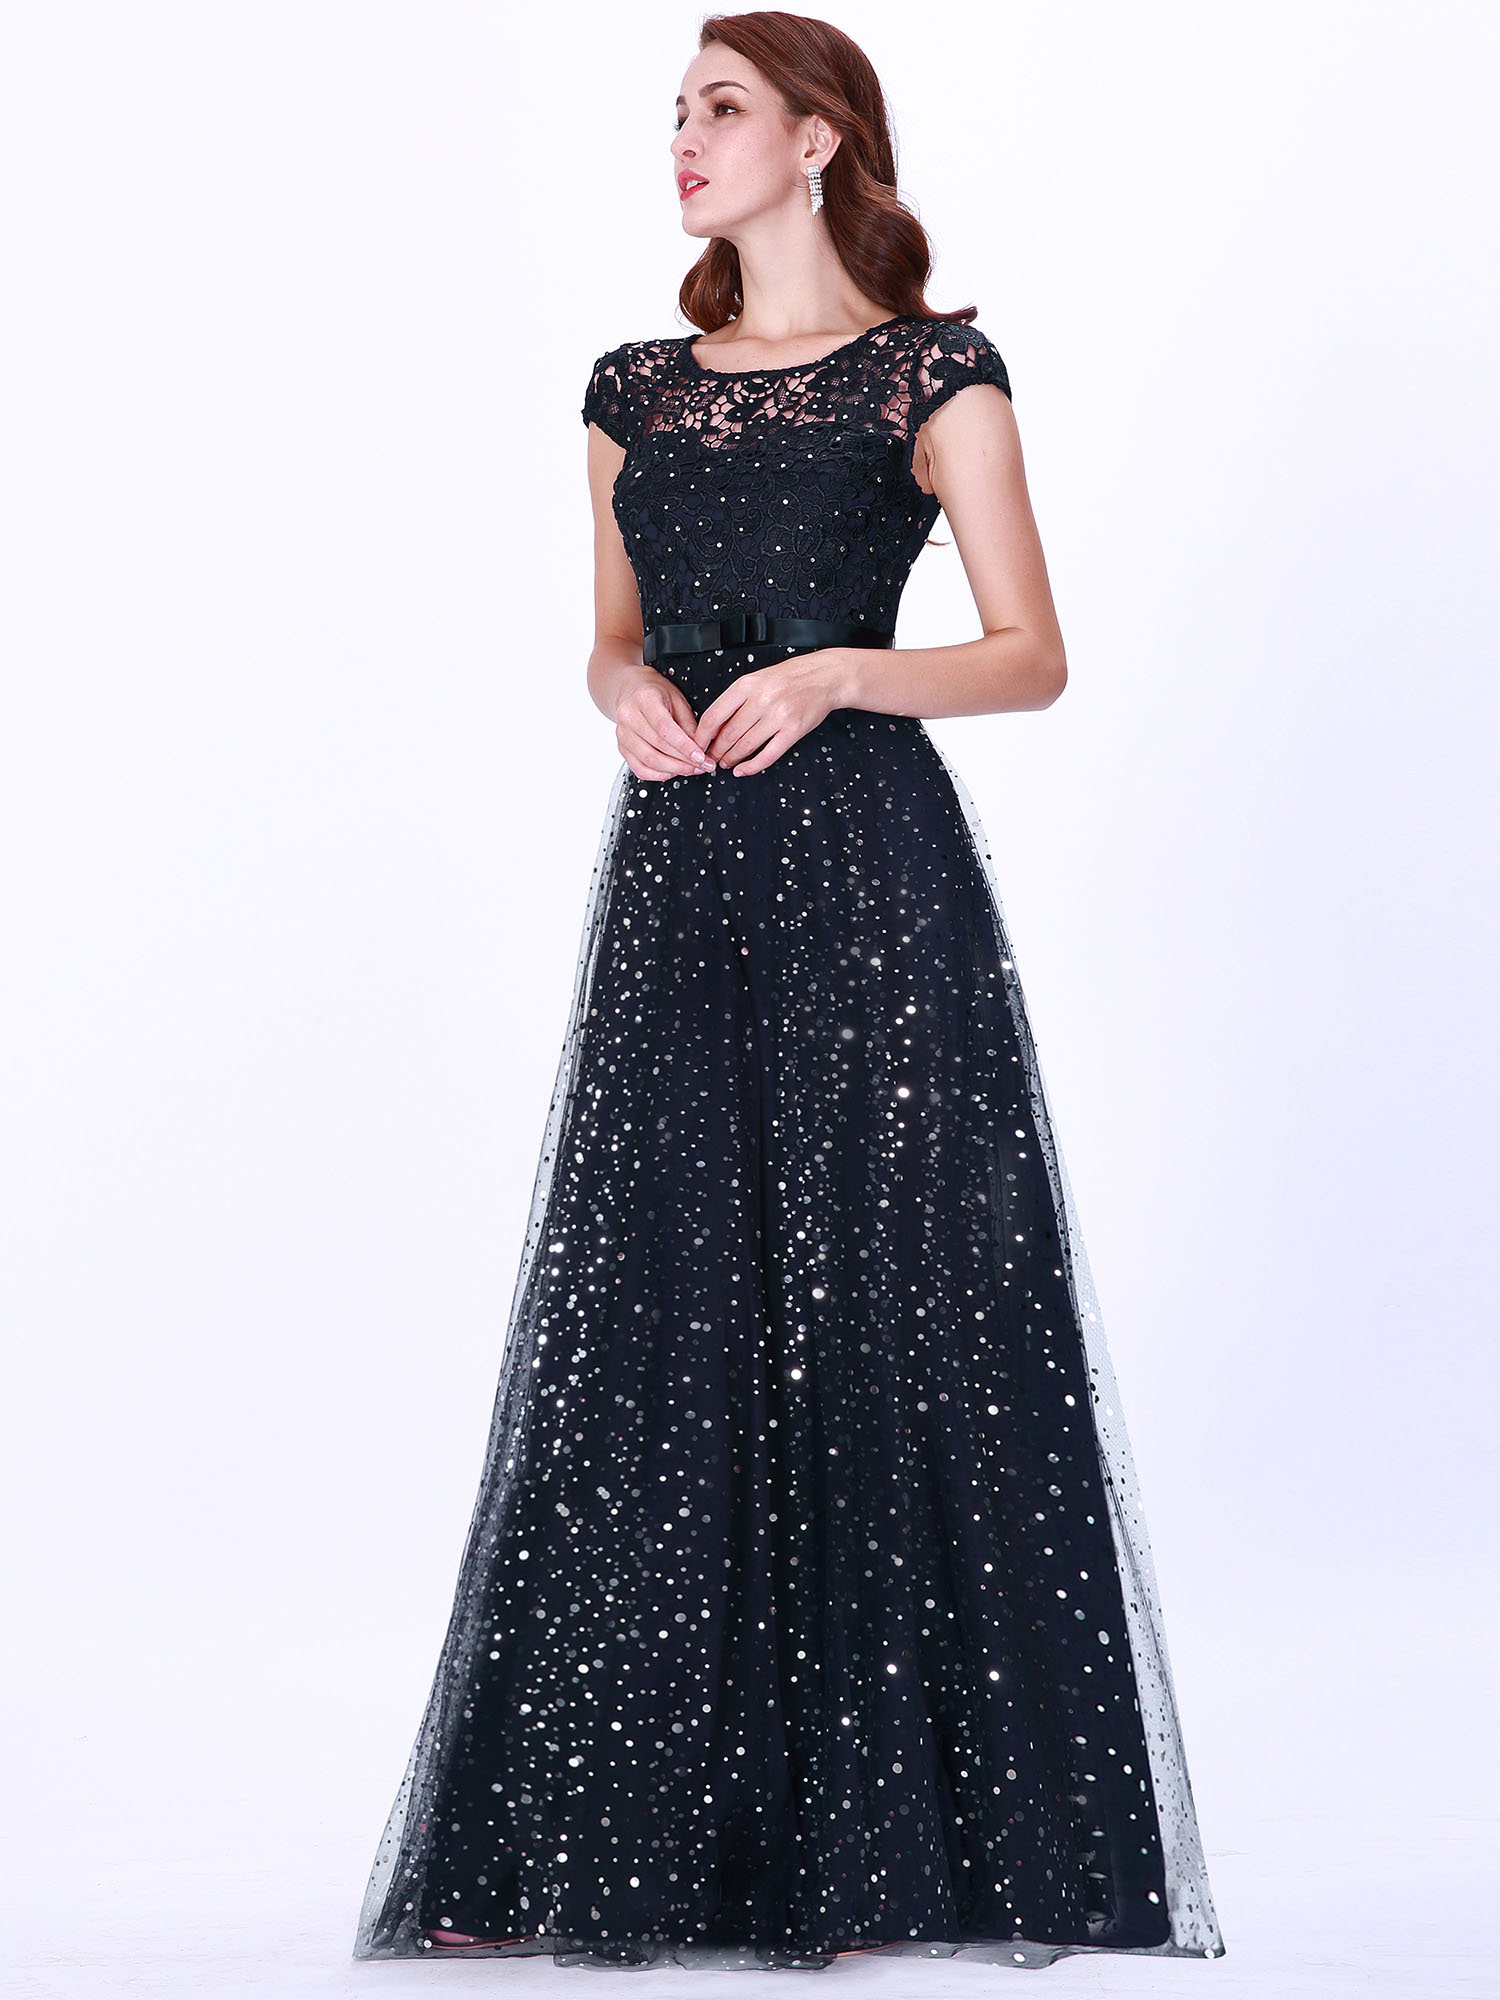 Ever-pretty-US-Formal-A-line-Cocktail-Party-Dresses-Homecoming-Evening-Prom-Gown thumbnail 5